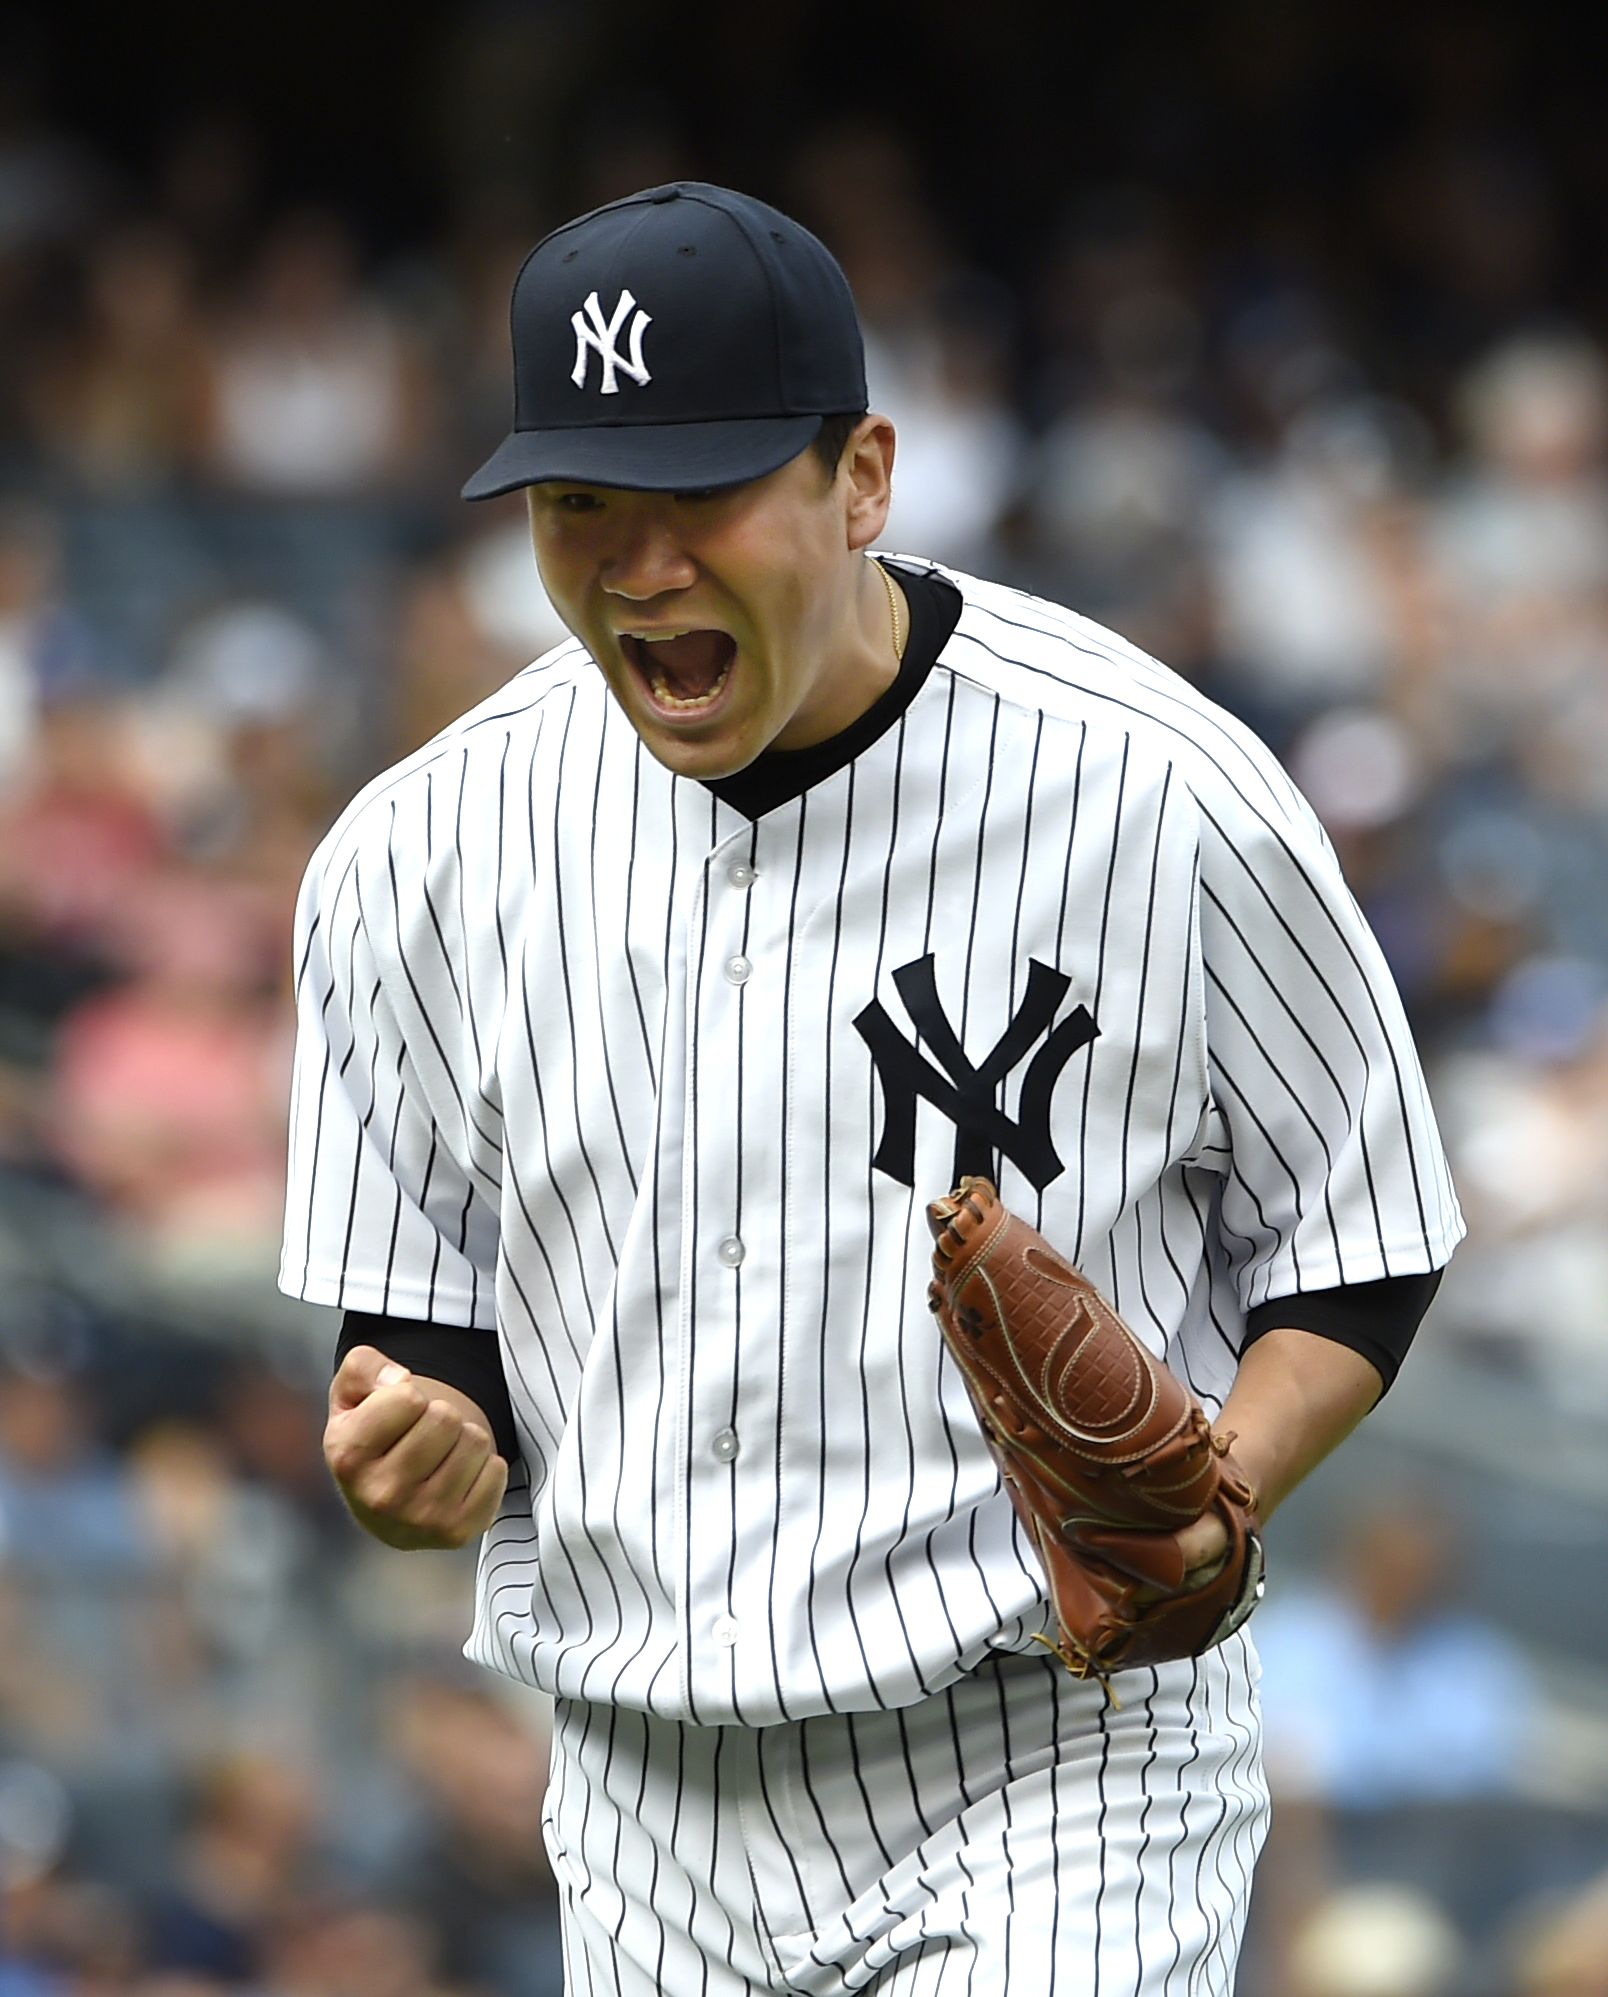 New York Yankees starting pitcher Masahiro Tanaka reacts after getting Toronto Blue Jays' Kevin Pillar to fly out for the third out in the seventh inning of a baseball game at Yankee Stadium, Sunday, Sept. 13, 2015, in New York. The Yankees won 5-0. (AP P